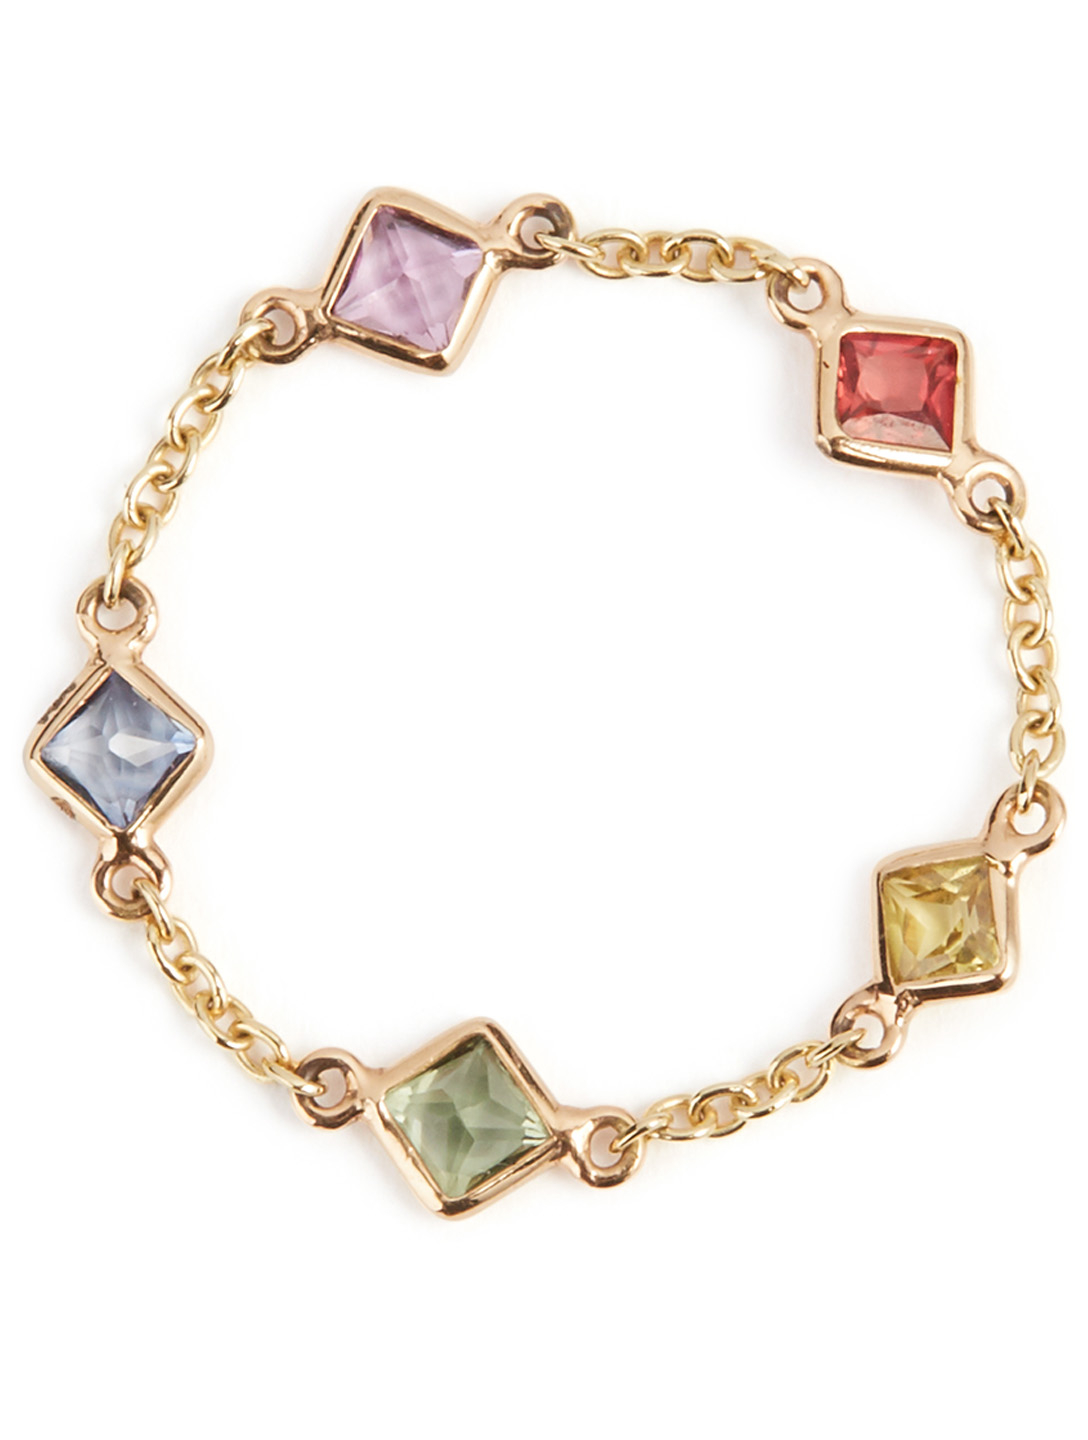 YI COLLECTION 18K Gold Sapphire Rainbow Five Stone Chain Ring Women's Metallic